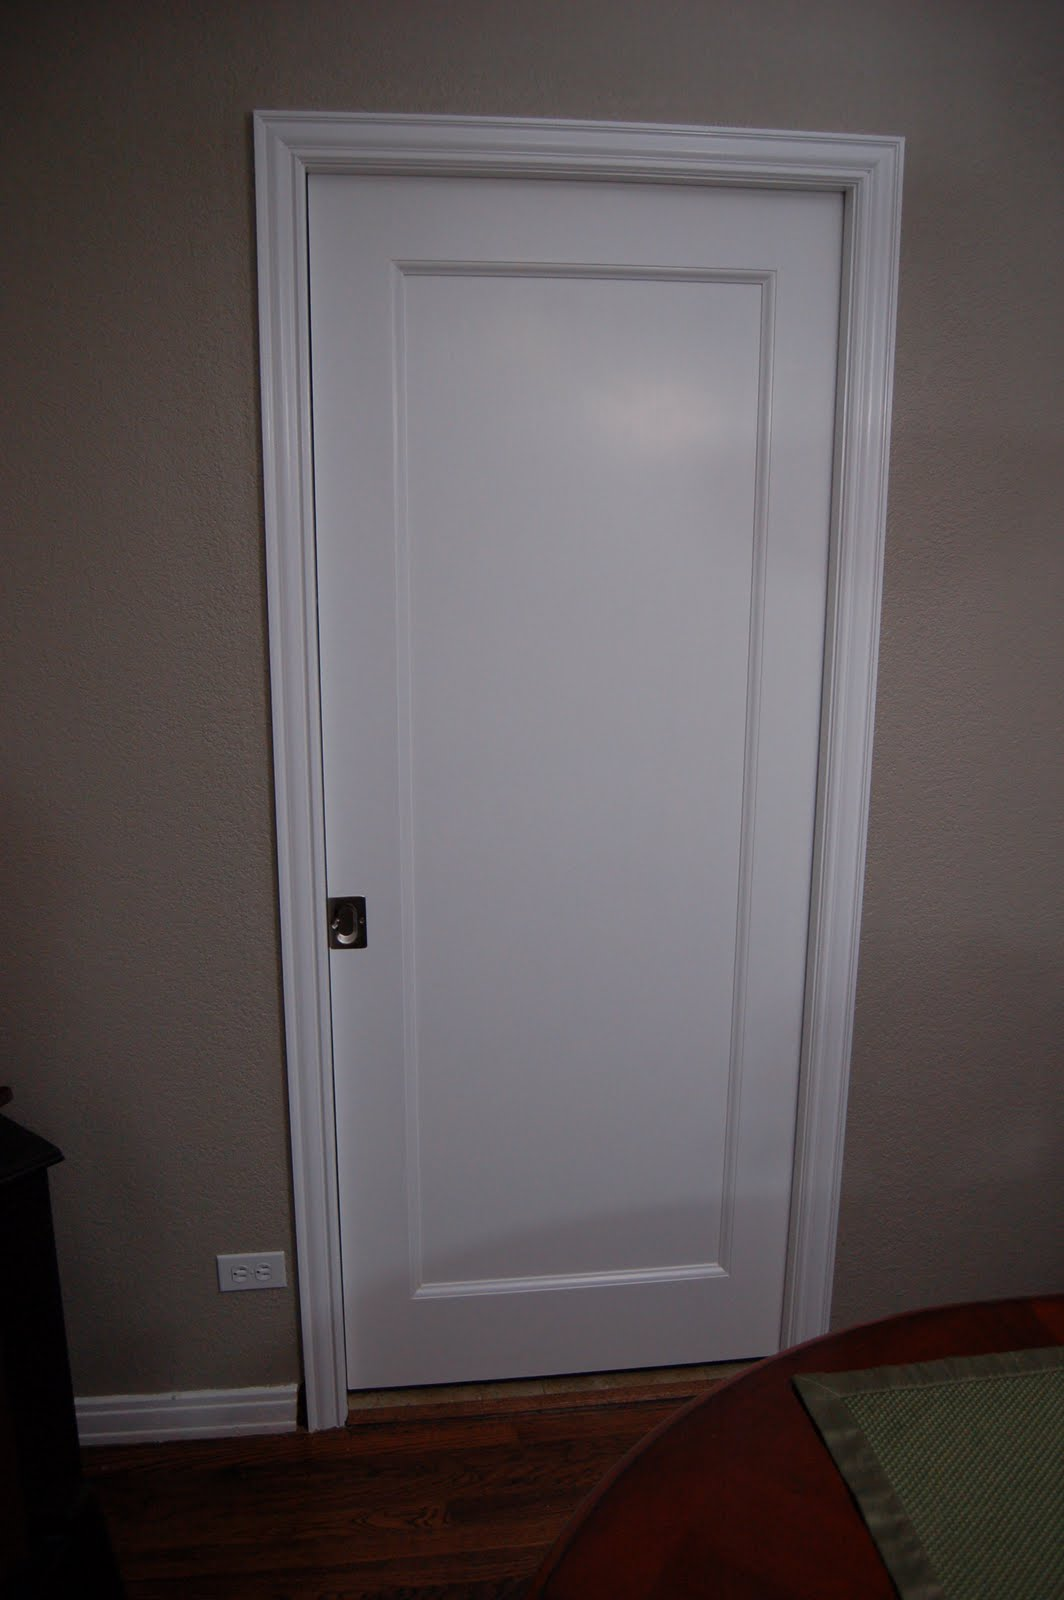 Door Installation And Repair Services Jzyacobqjja S Blog